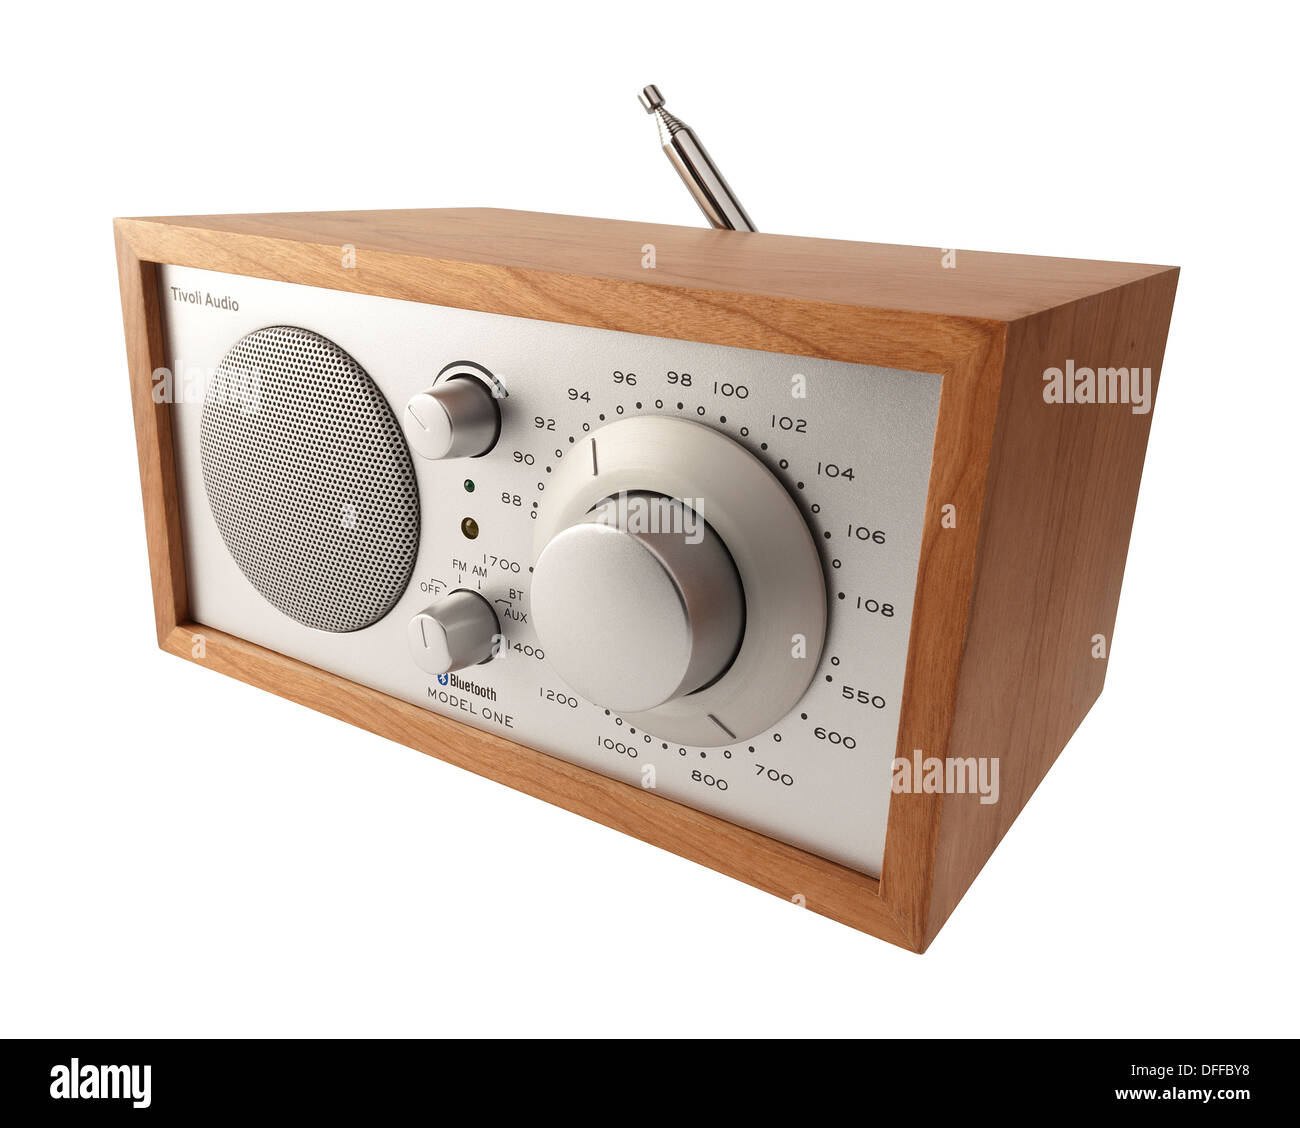 tivoli audio dab radio model one stock photo royalty free image 61189612 alamy. Black Bedroom Furniture Sets. Home Design Ideas